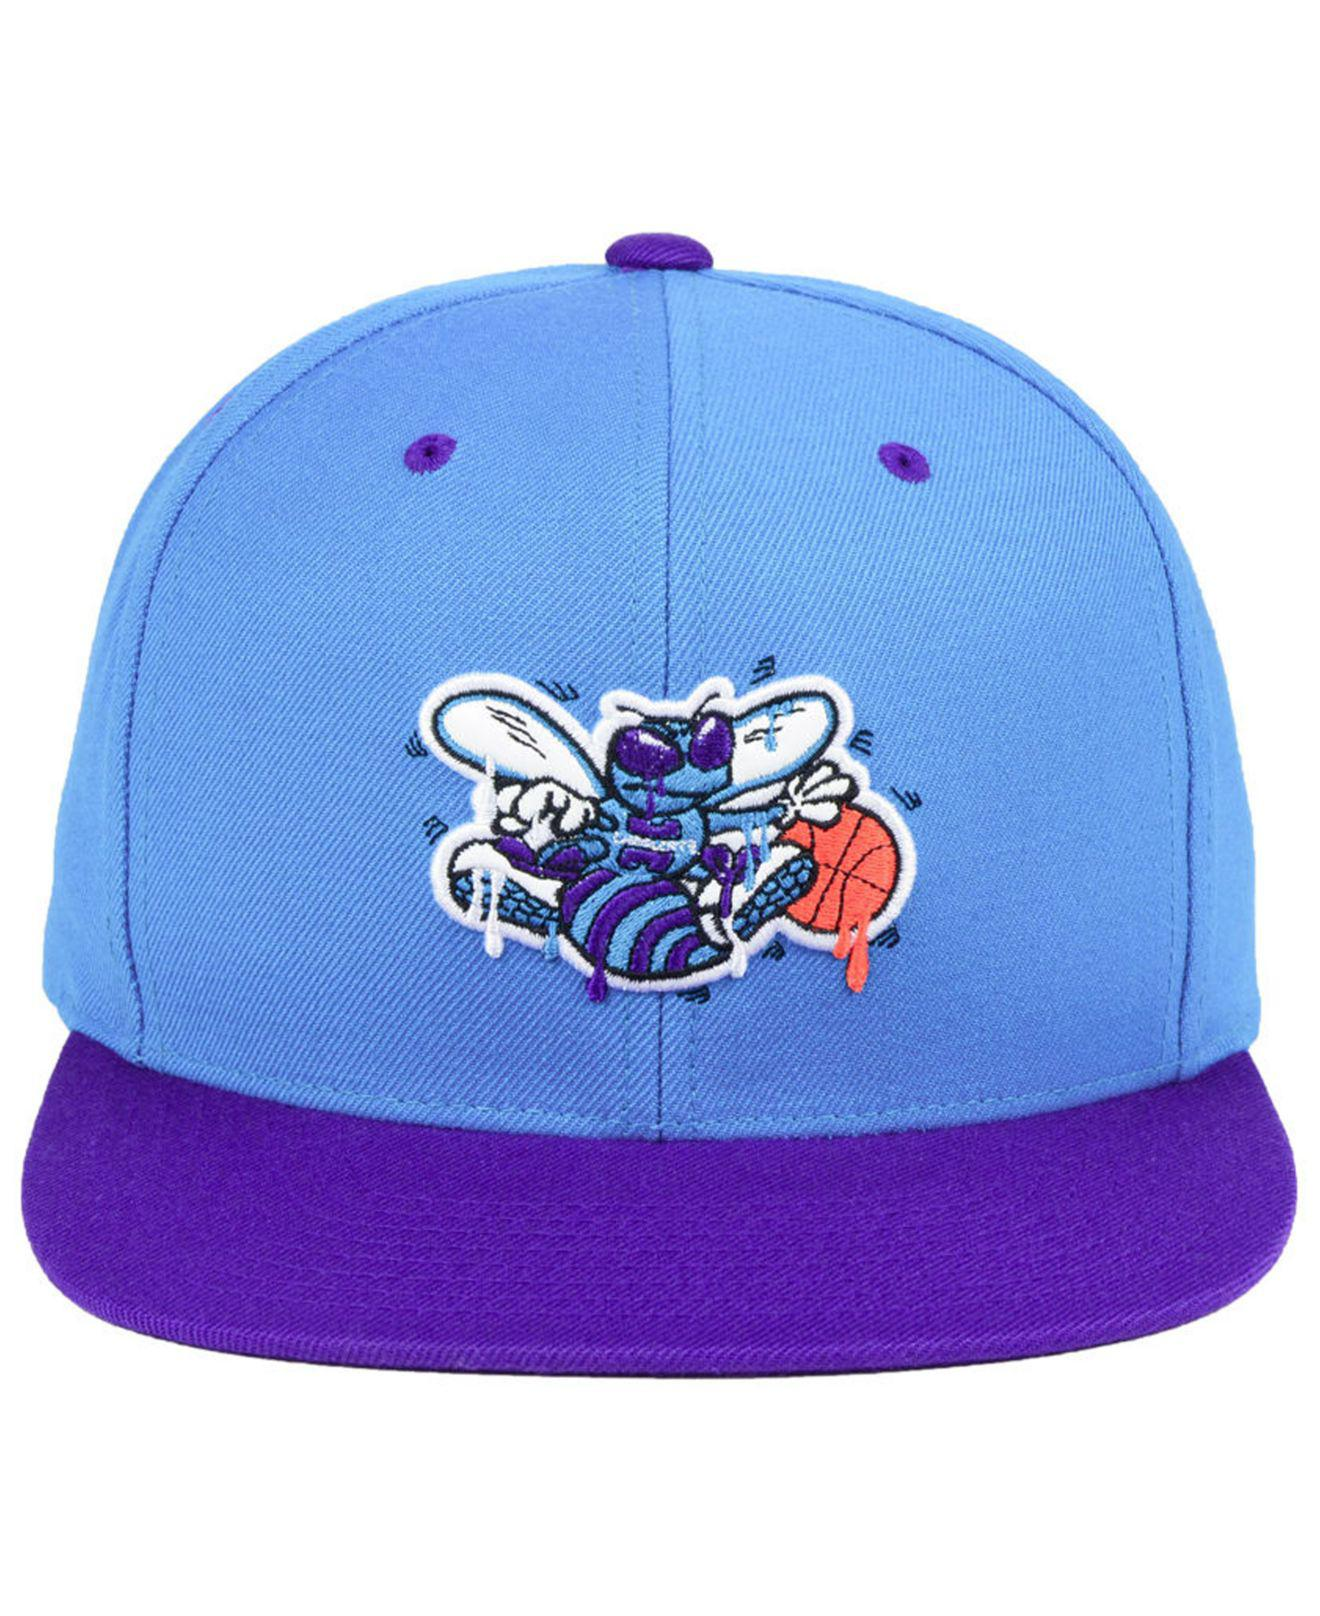 new style a7751 23fca usa oklahoma city thunder mitchell ness nba dripped snapback cap f8d54  1a6ac  buy lyst mitchell ness charlotte hornets dripped snapback cap in  blue for men ...